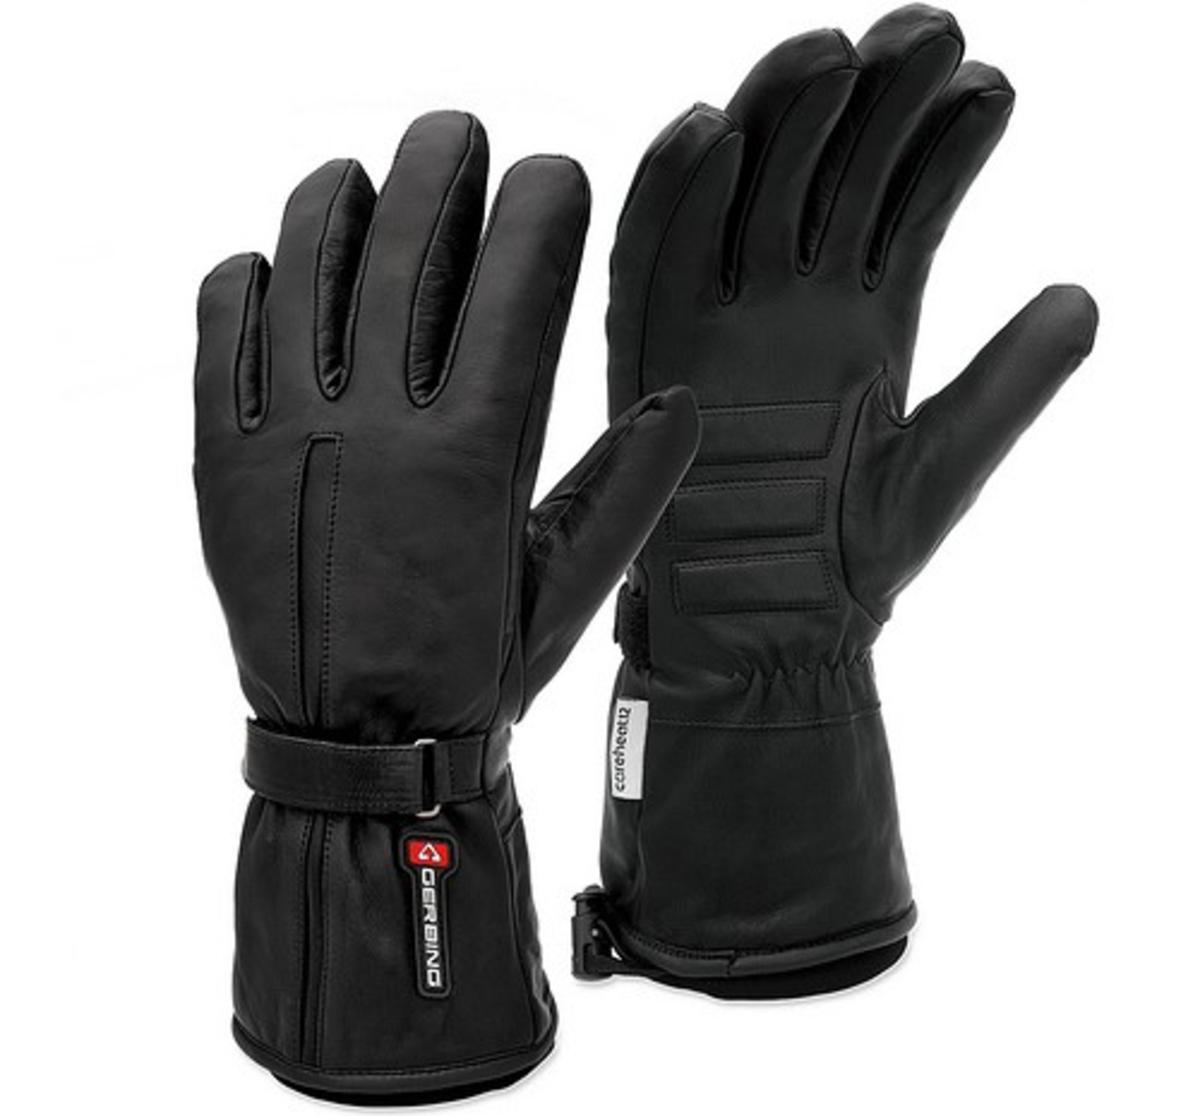 Gerbing G3 Heated Motorcycle Gloves For Men 12v Motorcycle The